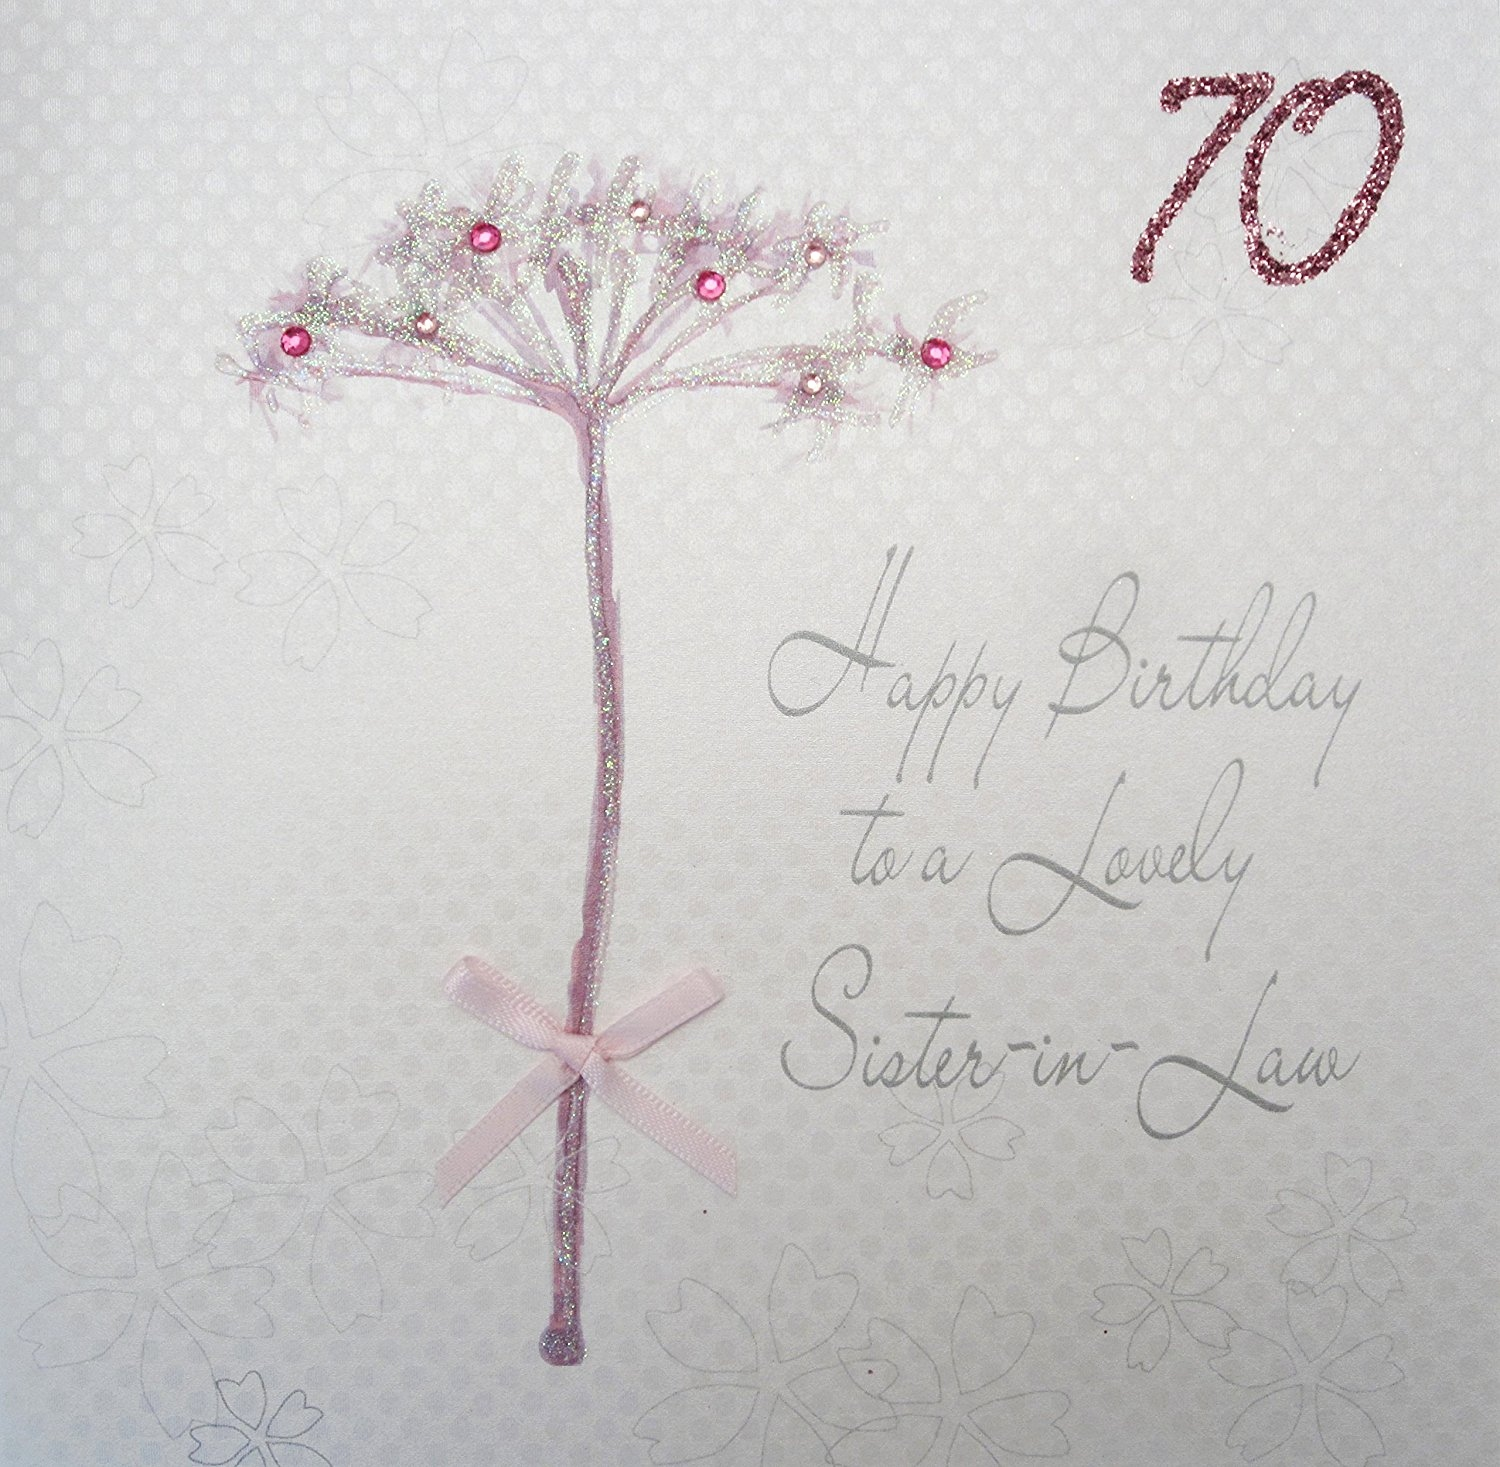 auntie 70th birthday card ; aunt-birthday-cards-awesome-happy-birthday-card-auntie-70th-bright-pink-flowerbed-handmade-of-aunt-birthday-cards